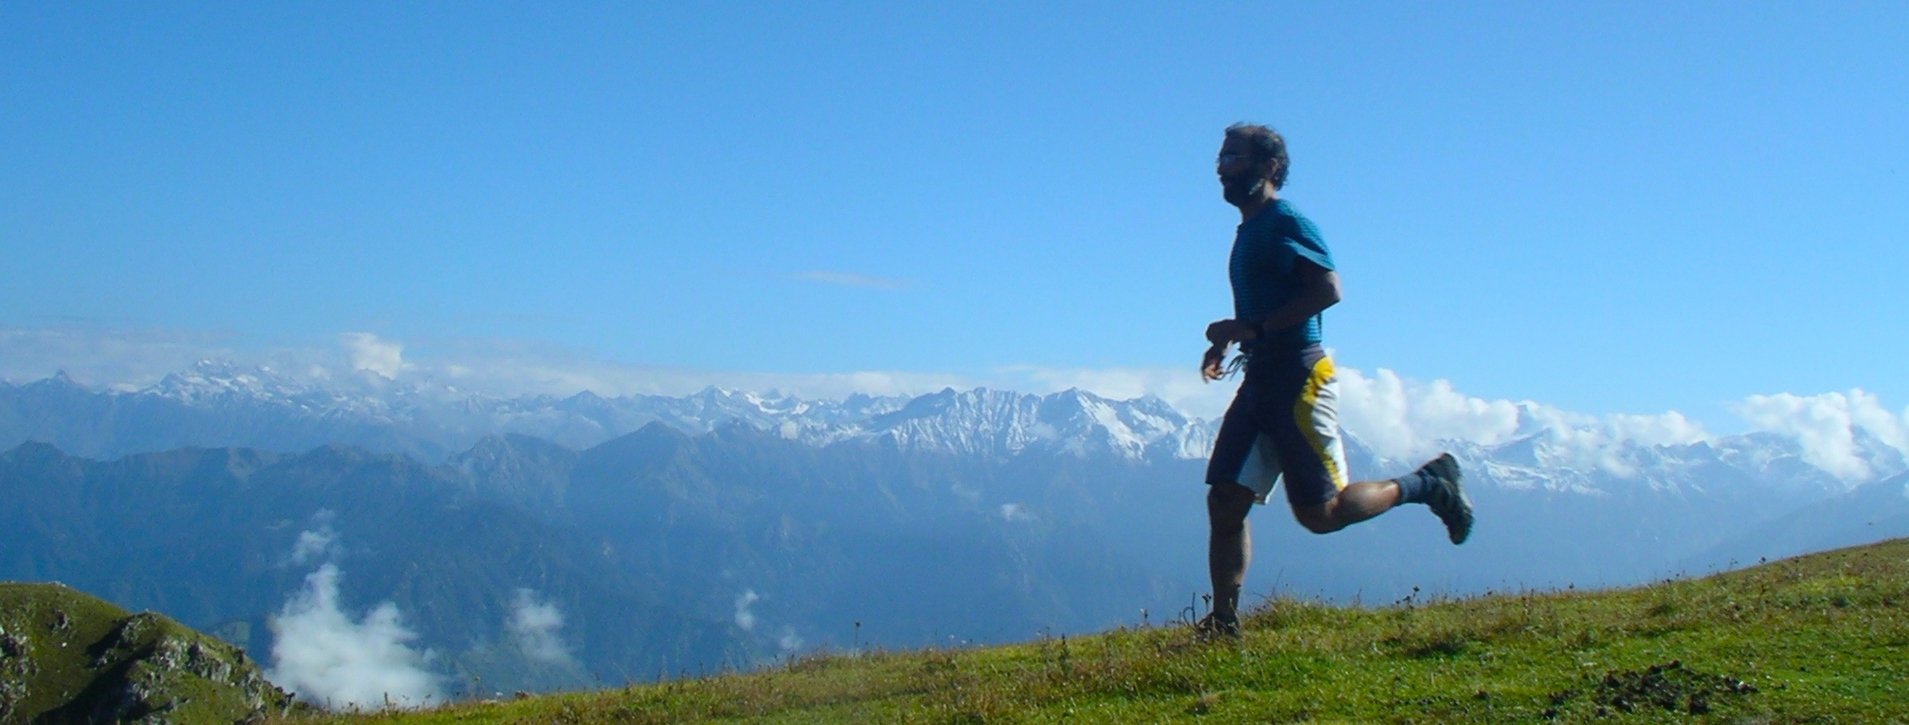 Blue sky above, Himalayas behind and green Earth underfoot... what a place to be alive.